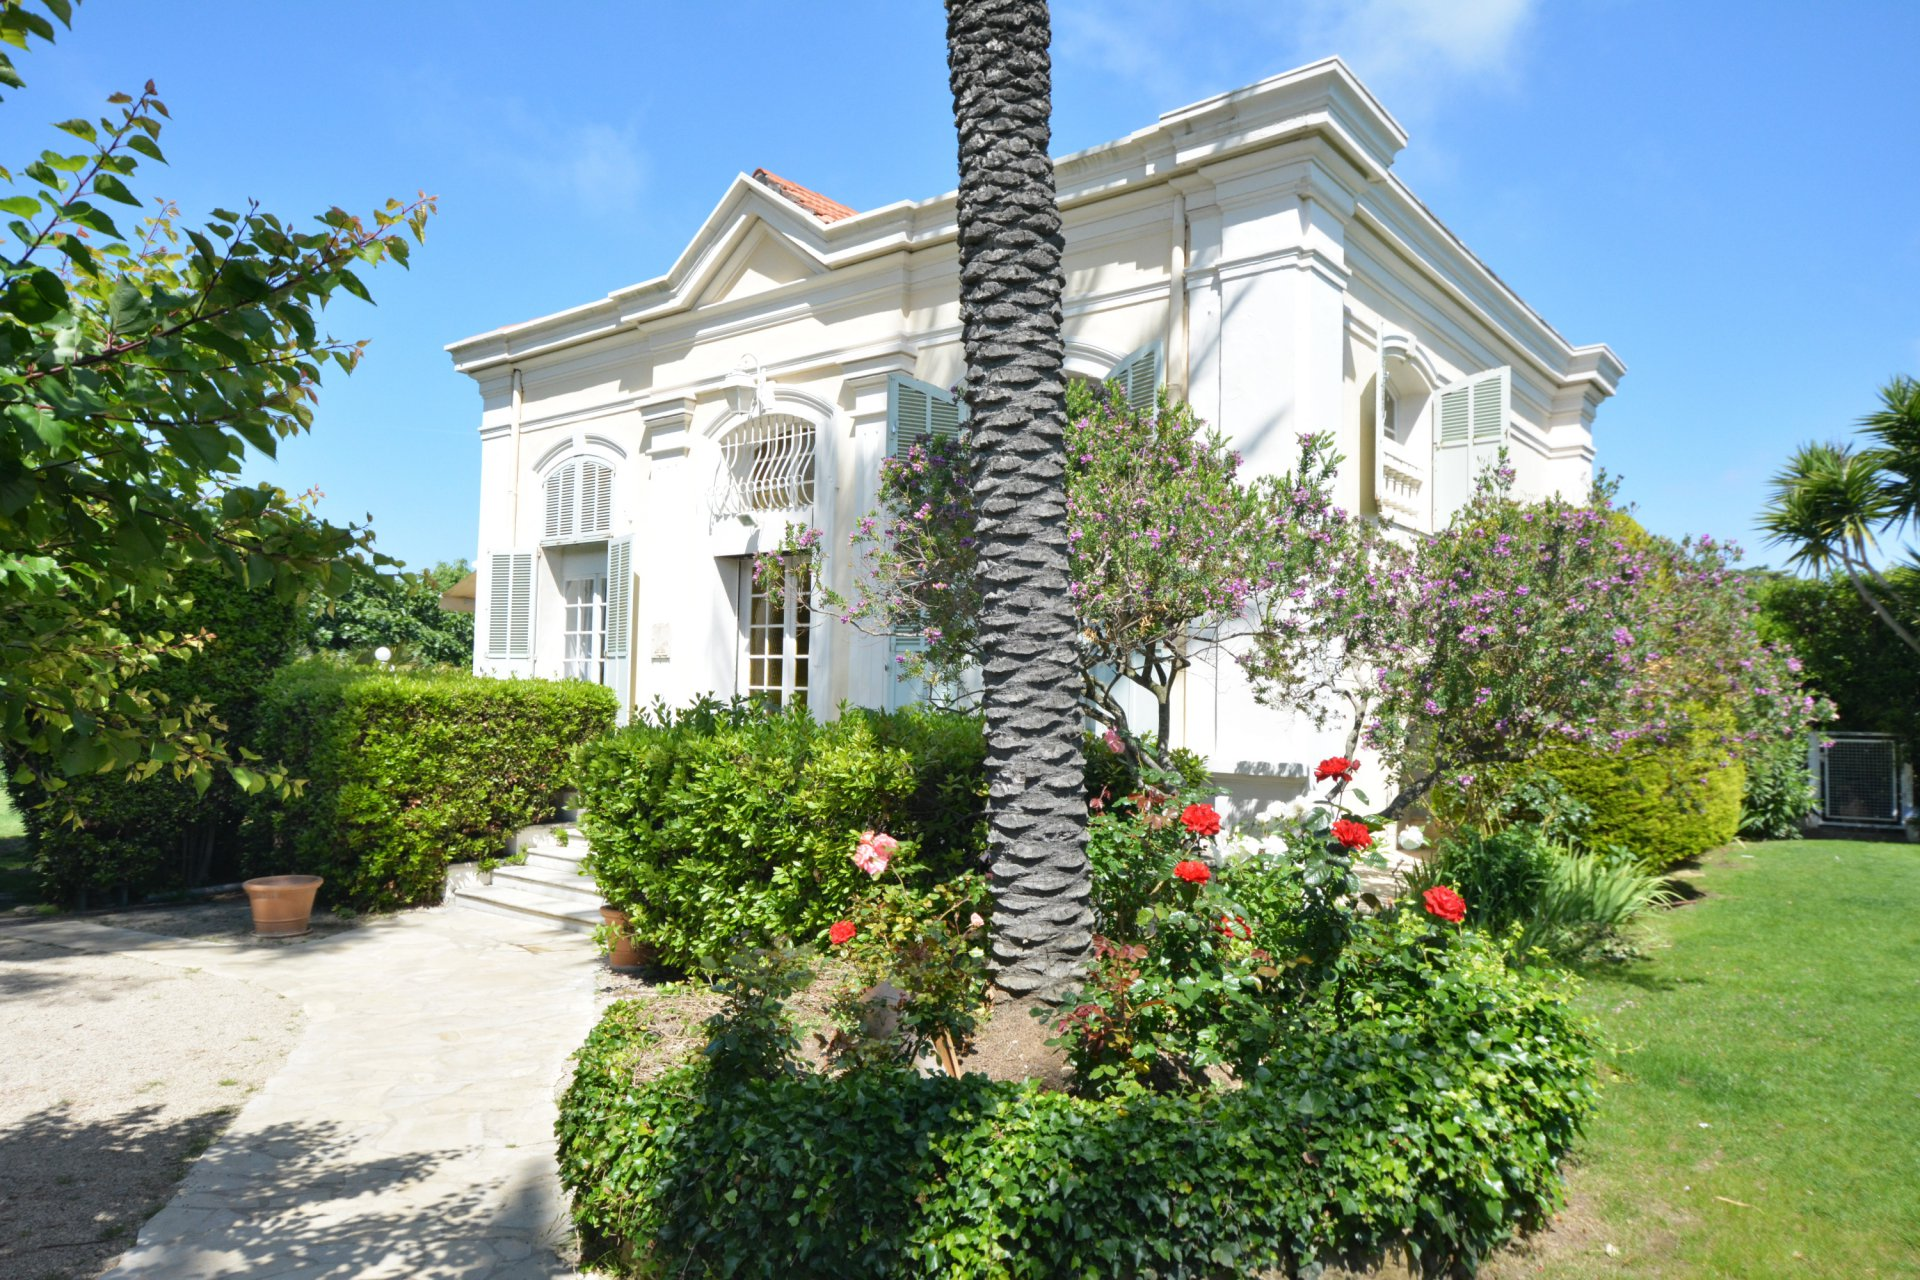 Villa close to Eden Roc and sandy beaches - West side